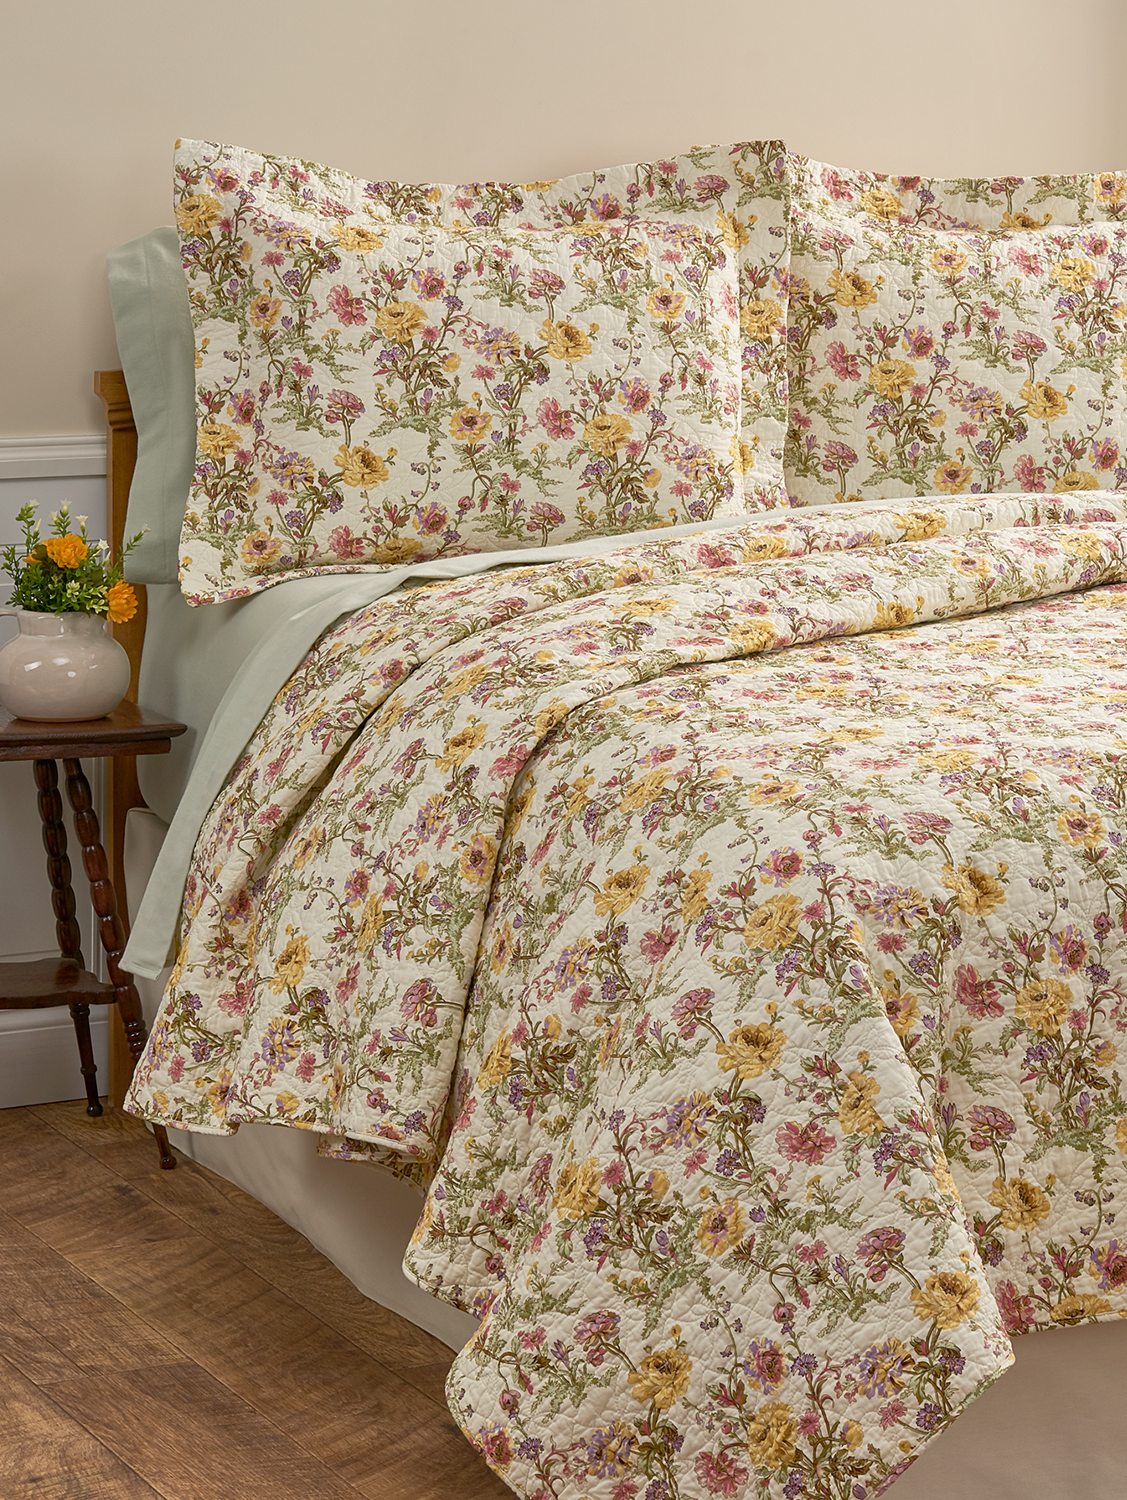 Floral Print Cotton Quilted Bedspread Lightweight Bedding Quilted Coverlet Quilted Bedspreads